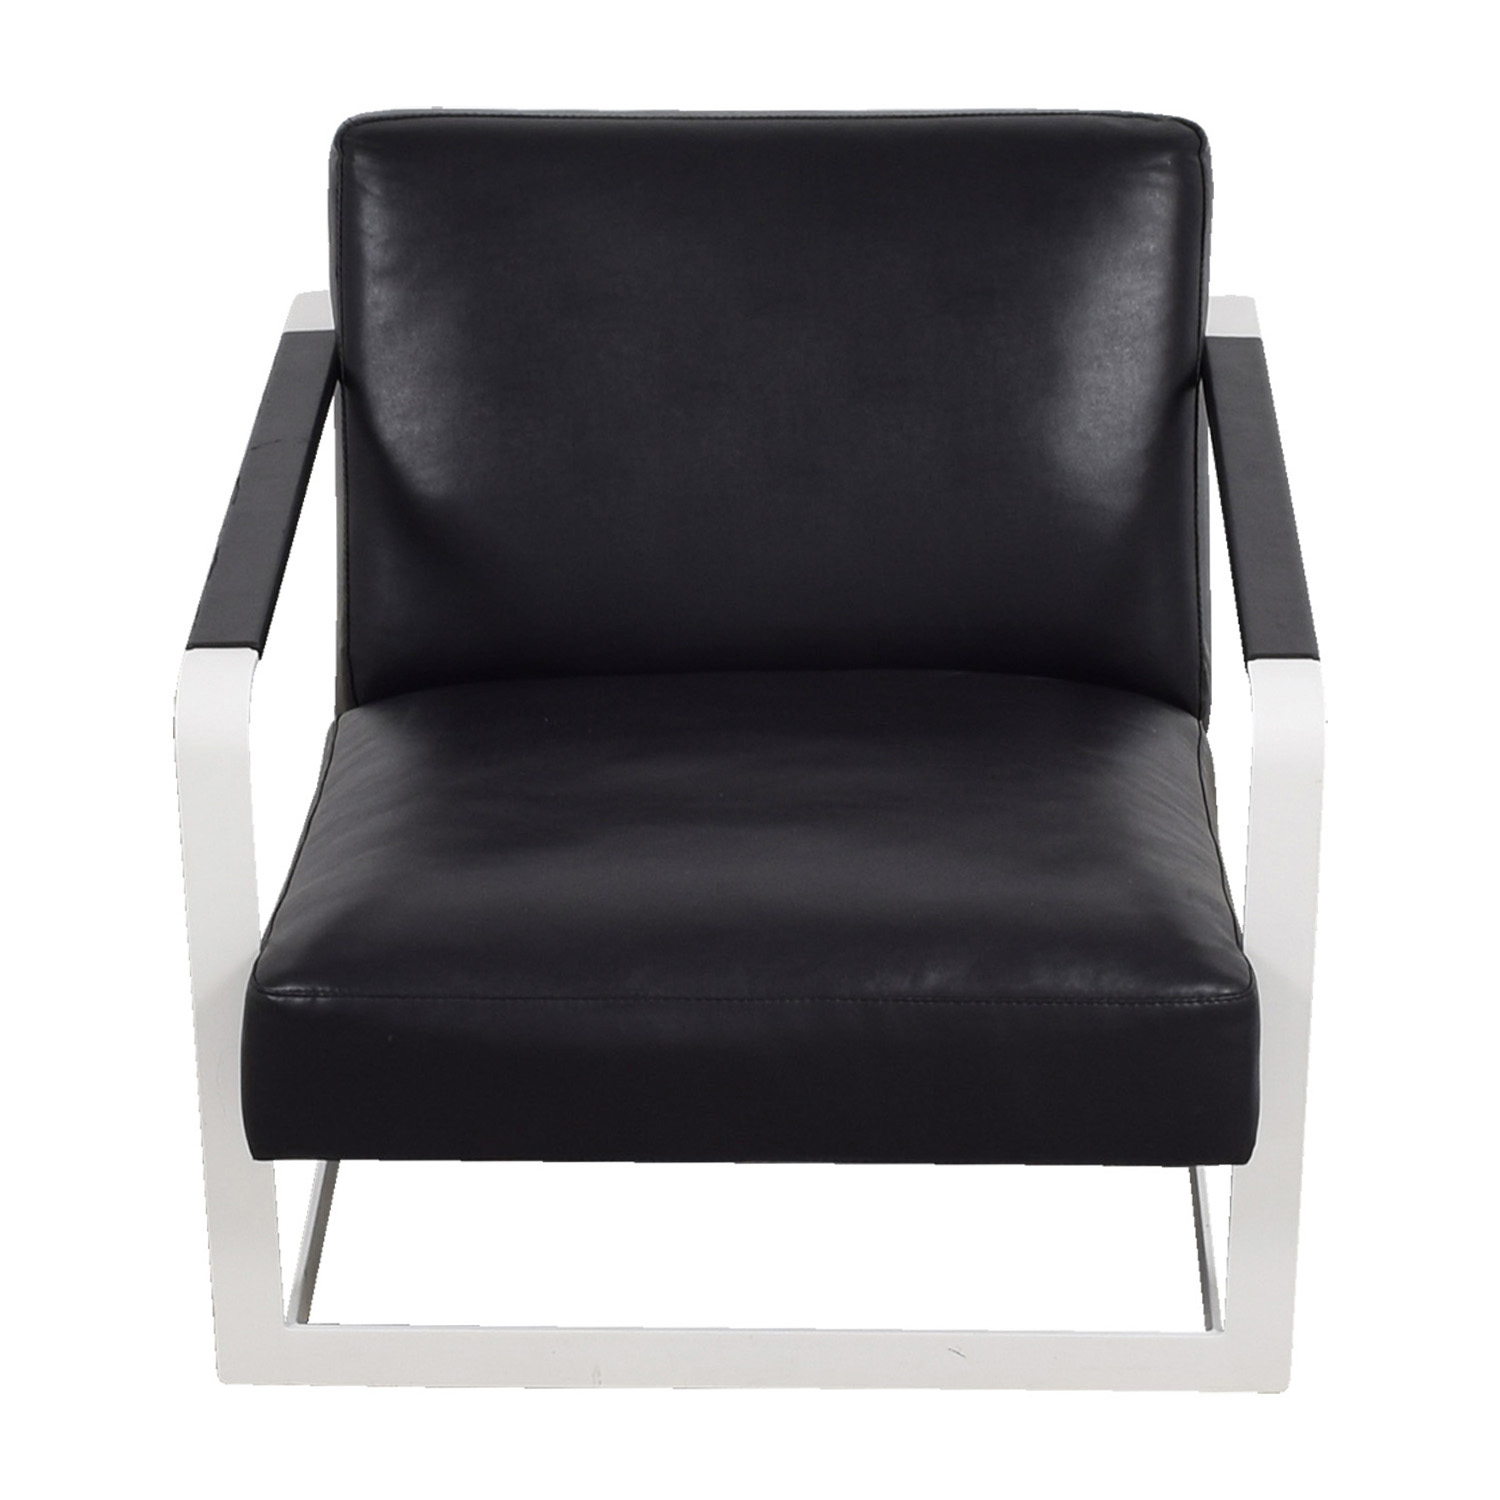 Modloft Modloft Crosby Black and White Lounge Chair nyc